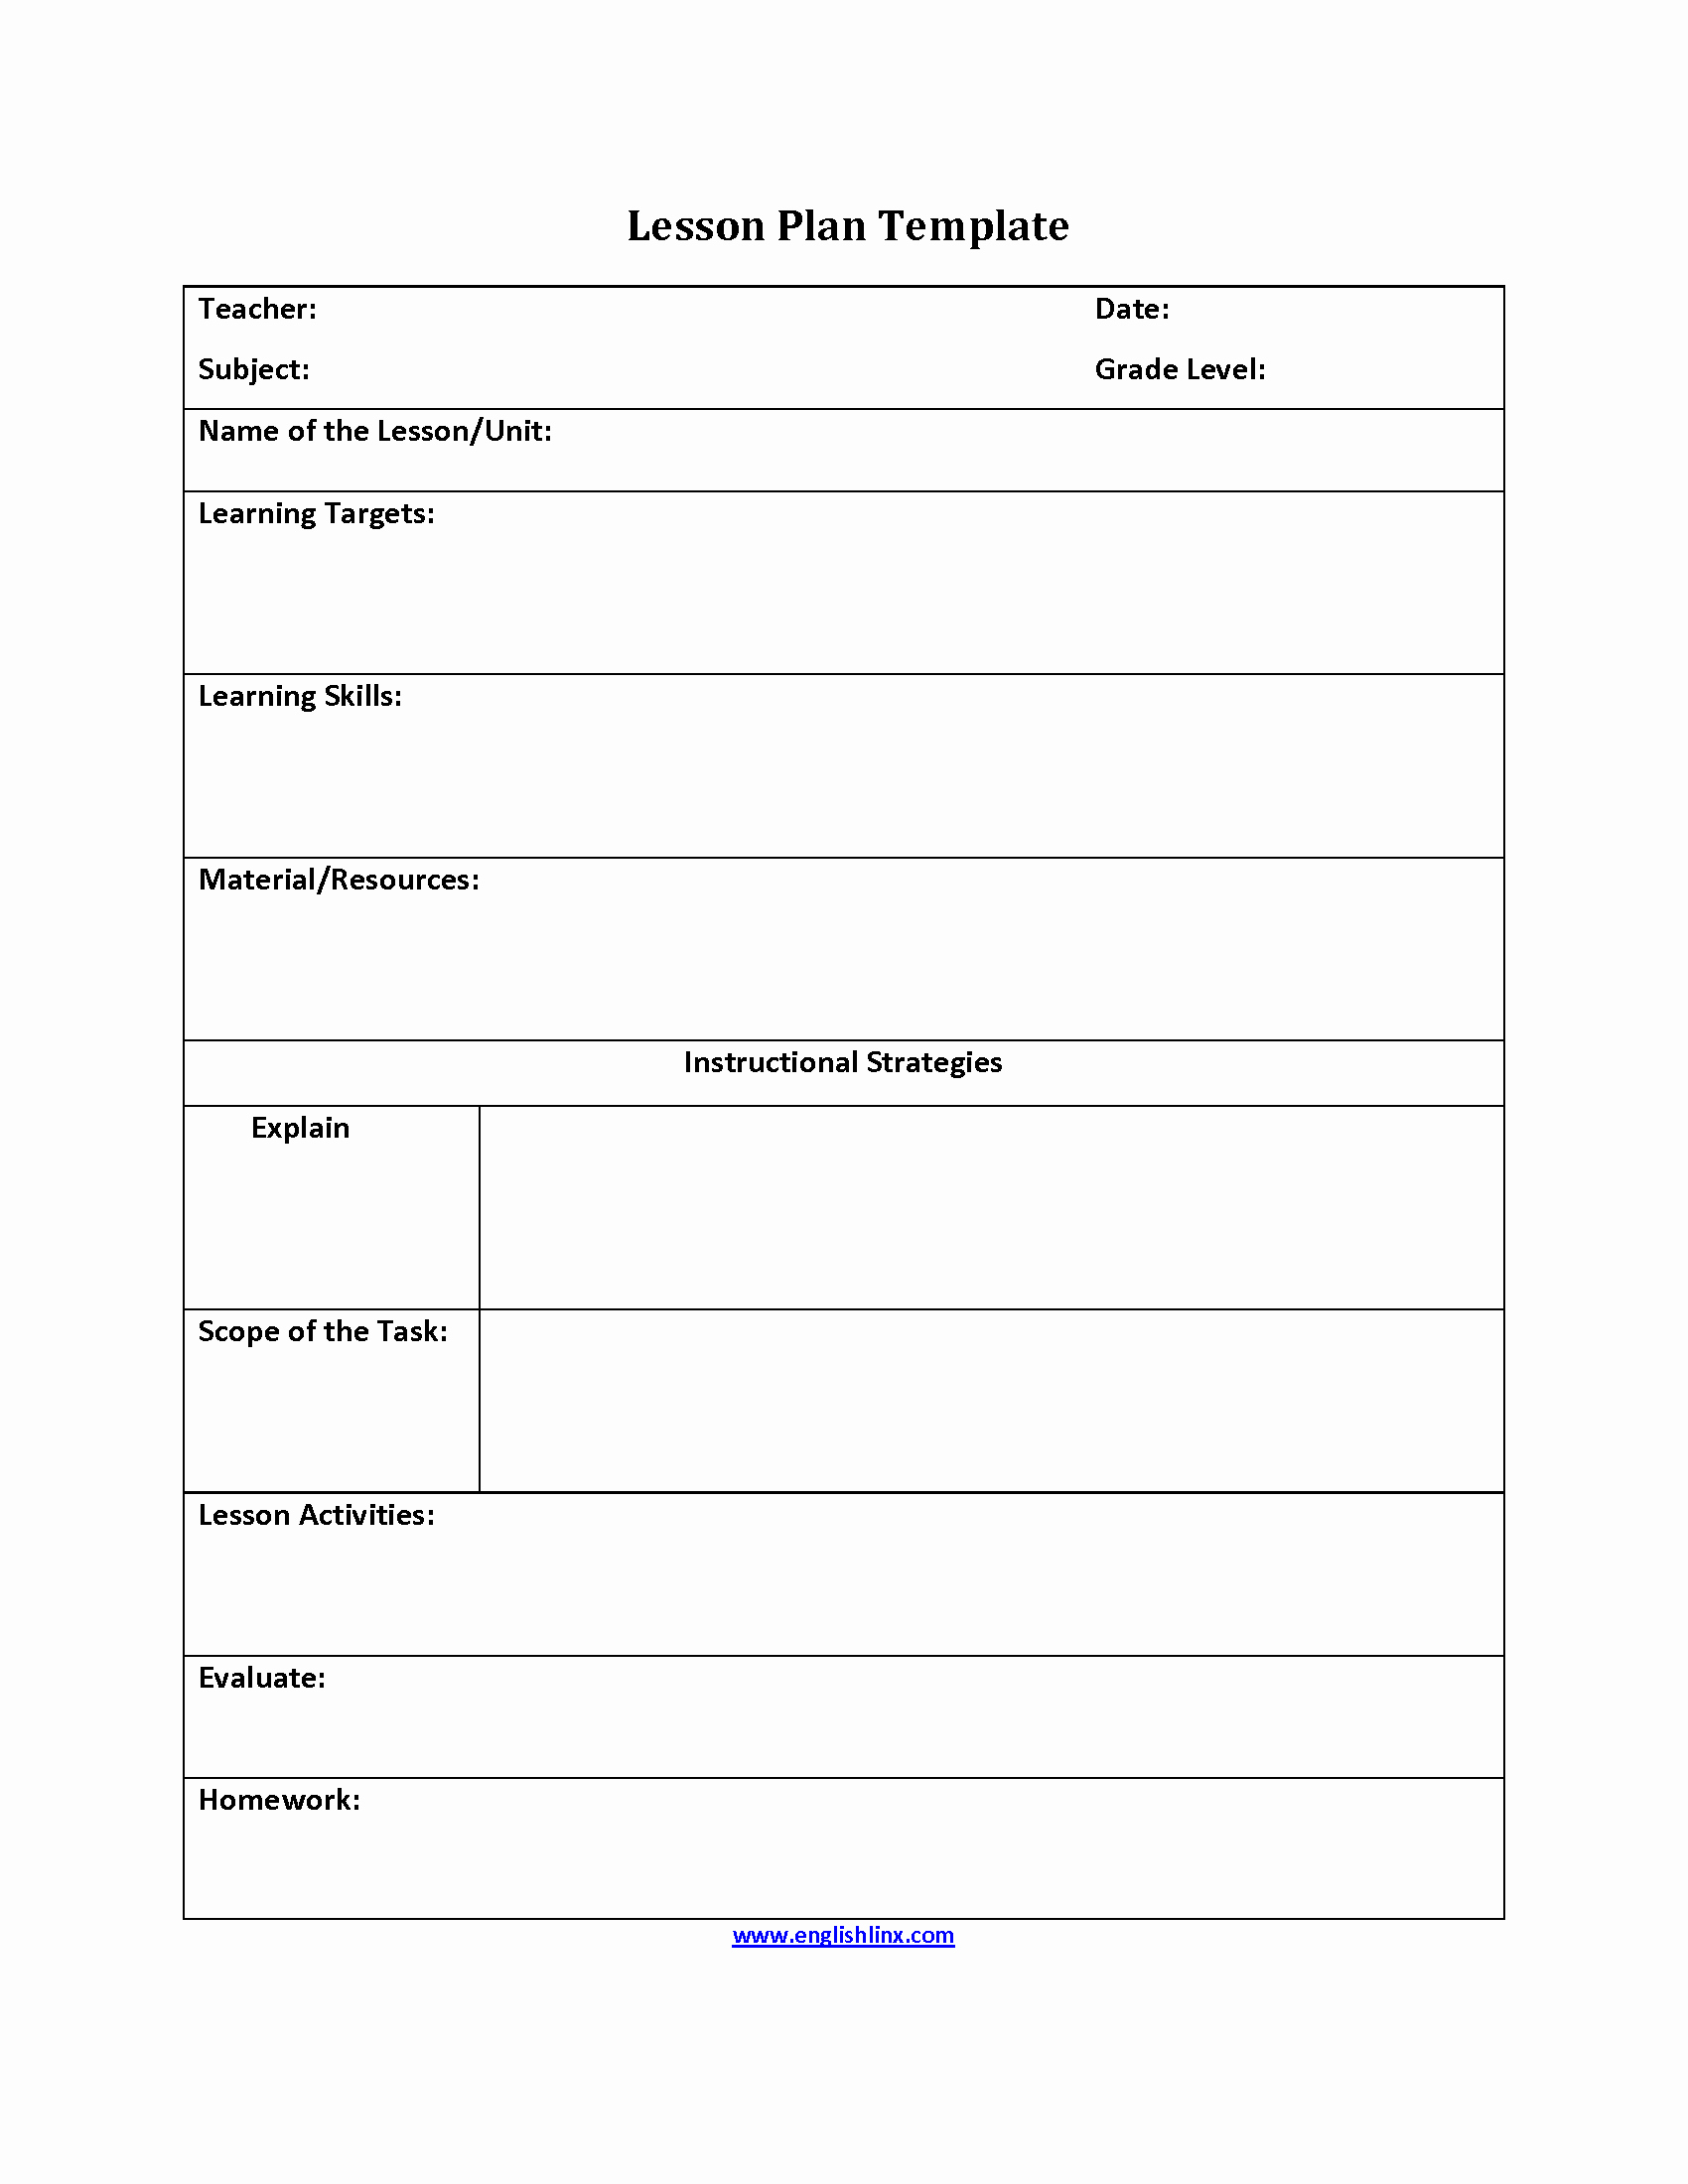 Lesson Plan Template Free Elegant What is Lesson Plan Template